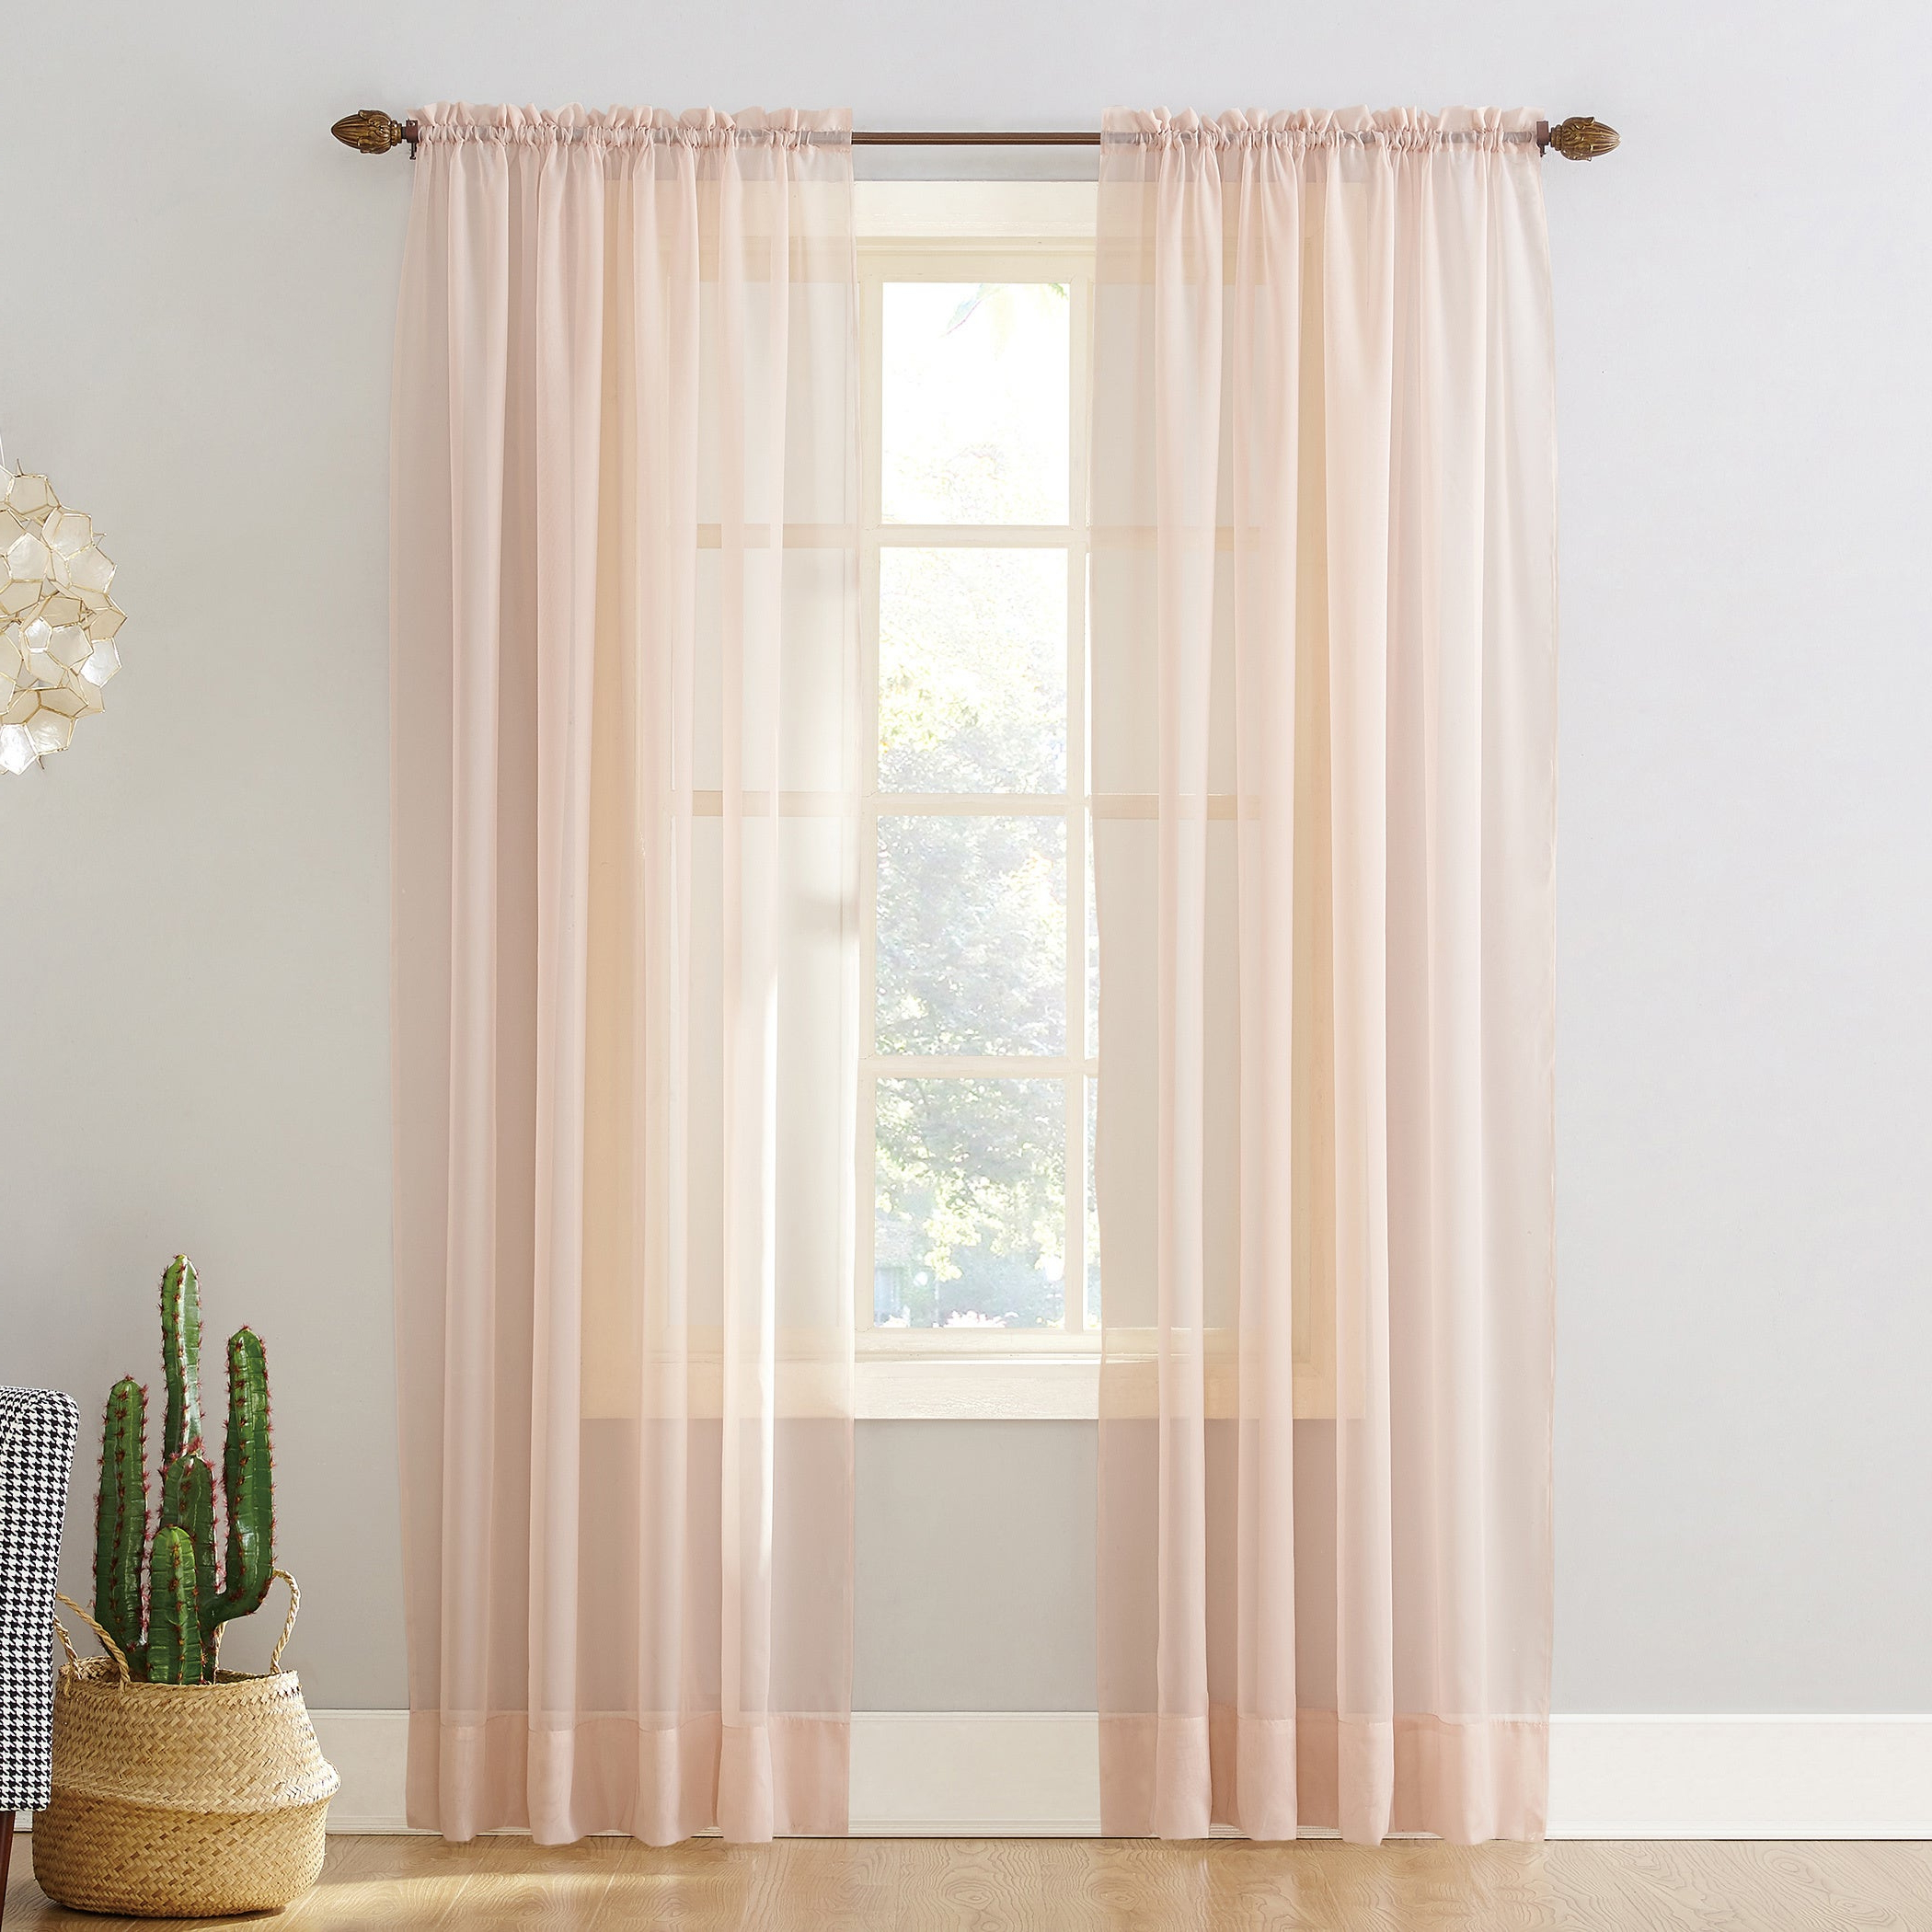 Preferred Emily Sheer Voile Single Curtain Panels Regarding Shop No (View 16 of 20)